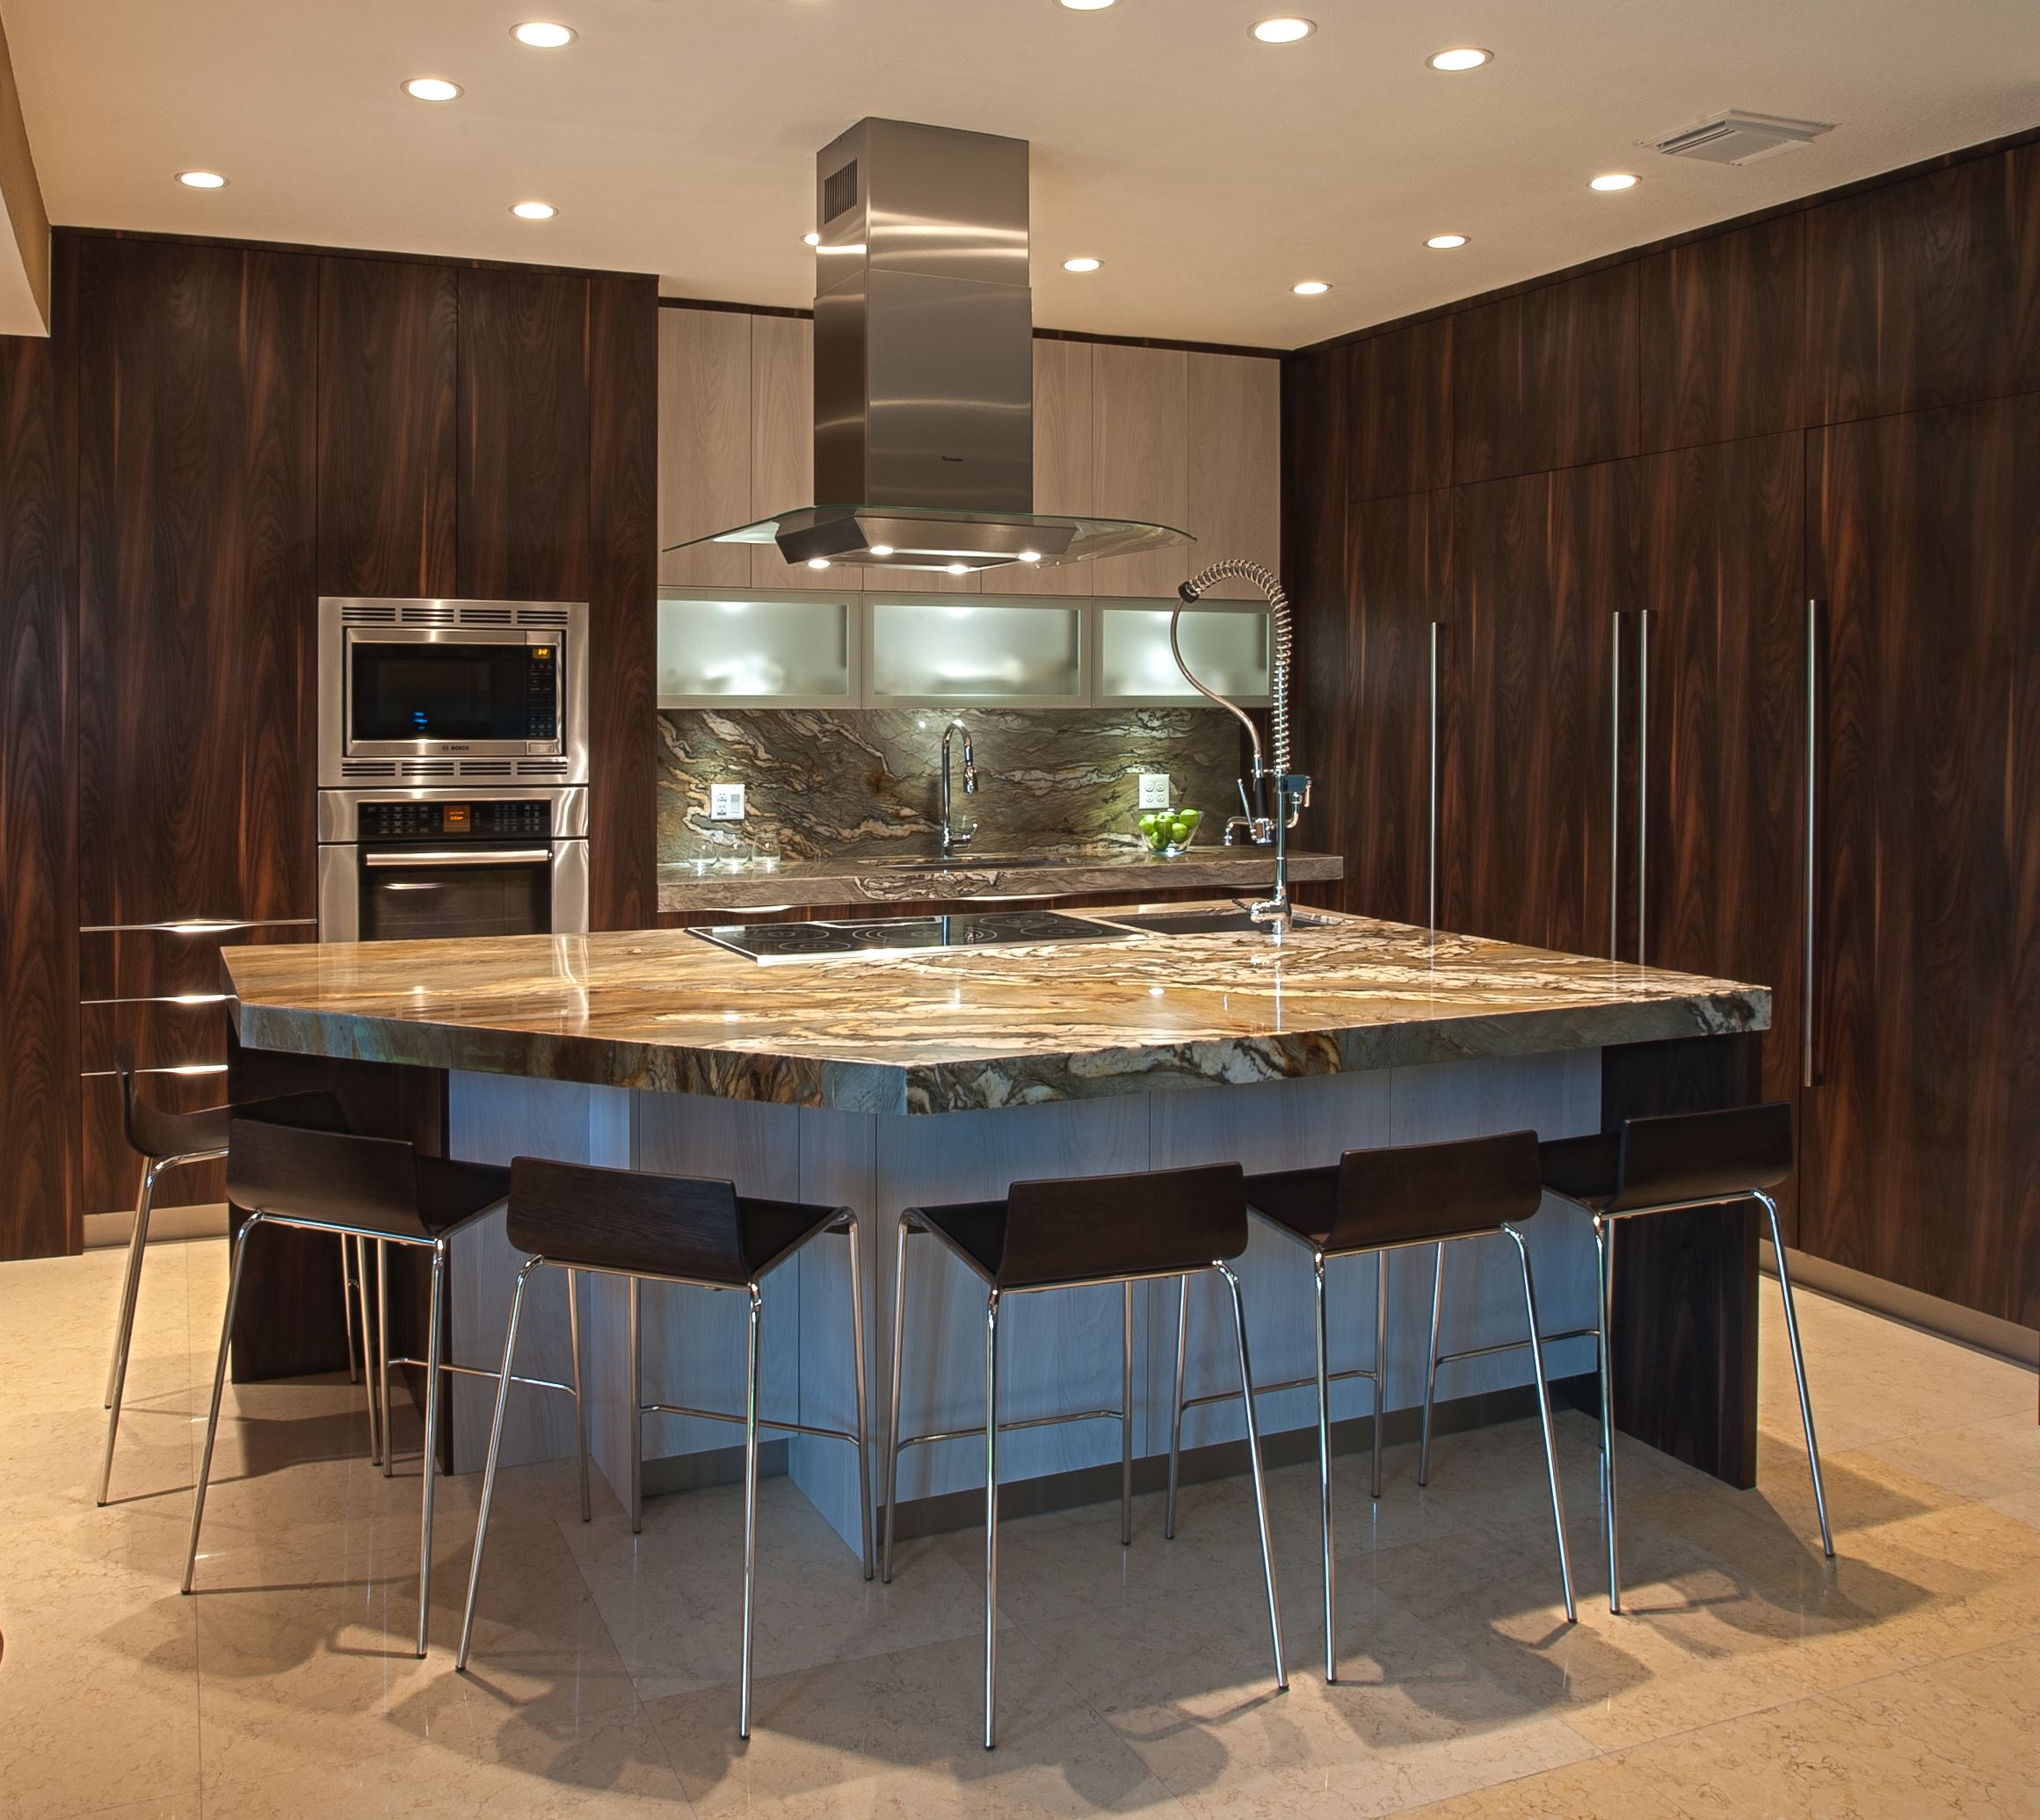 Cabinet Doors Textured Laminate laminate kitchen cabinets A sleek and modern designed kitchen with two tone using textured laminate The brown vertical